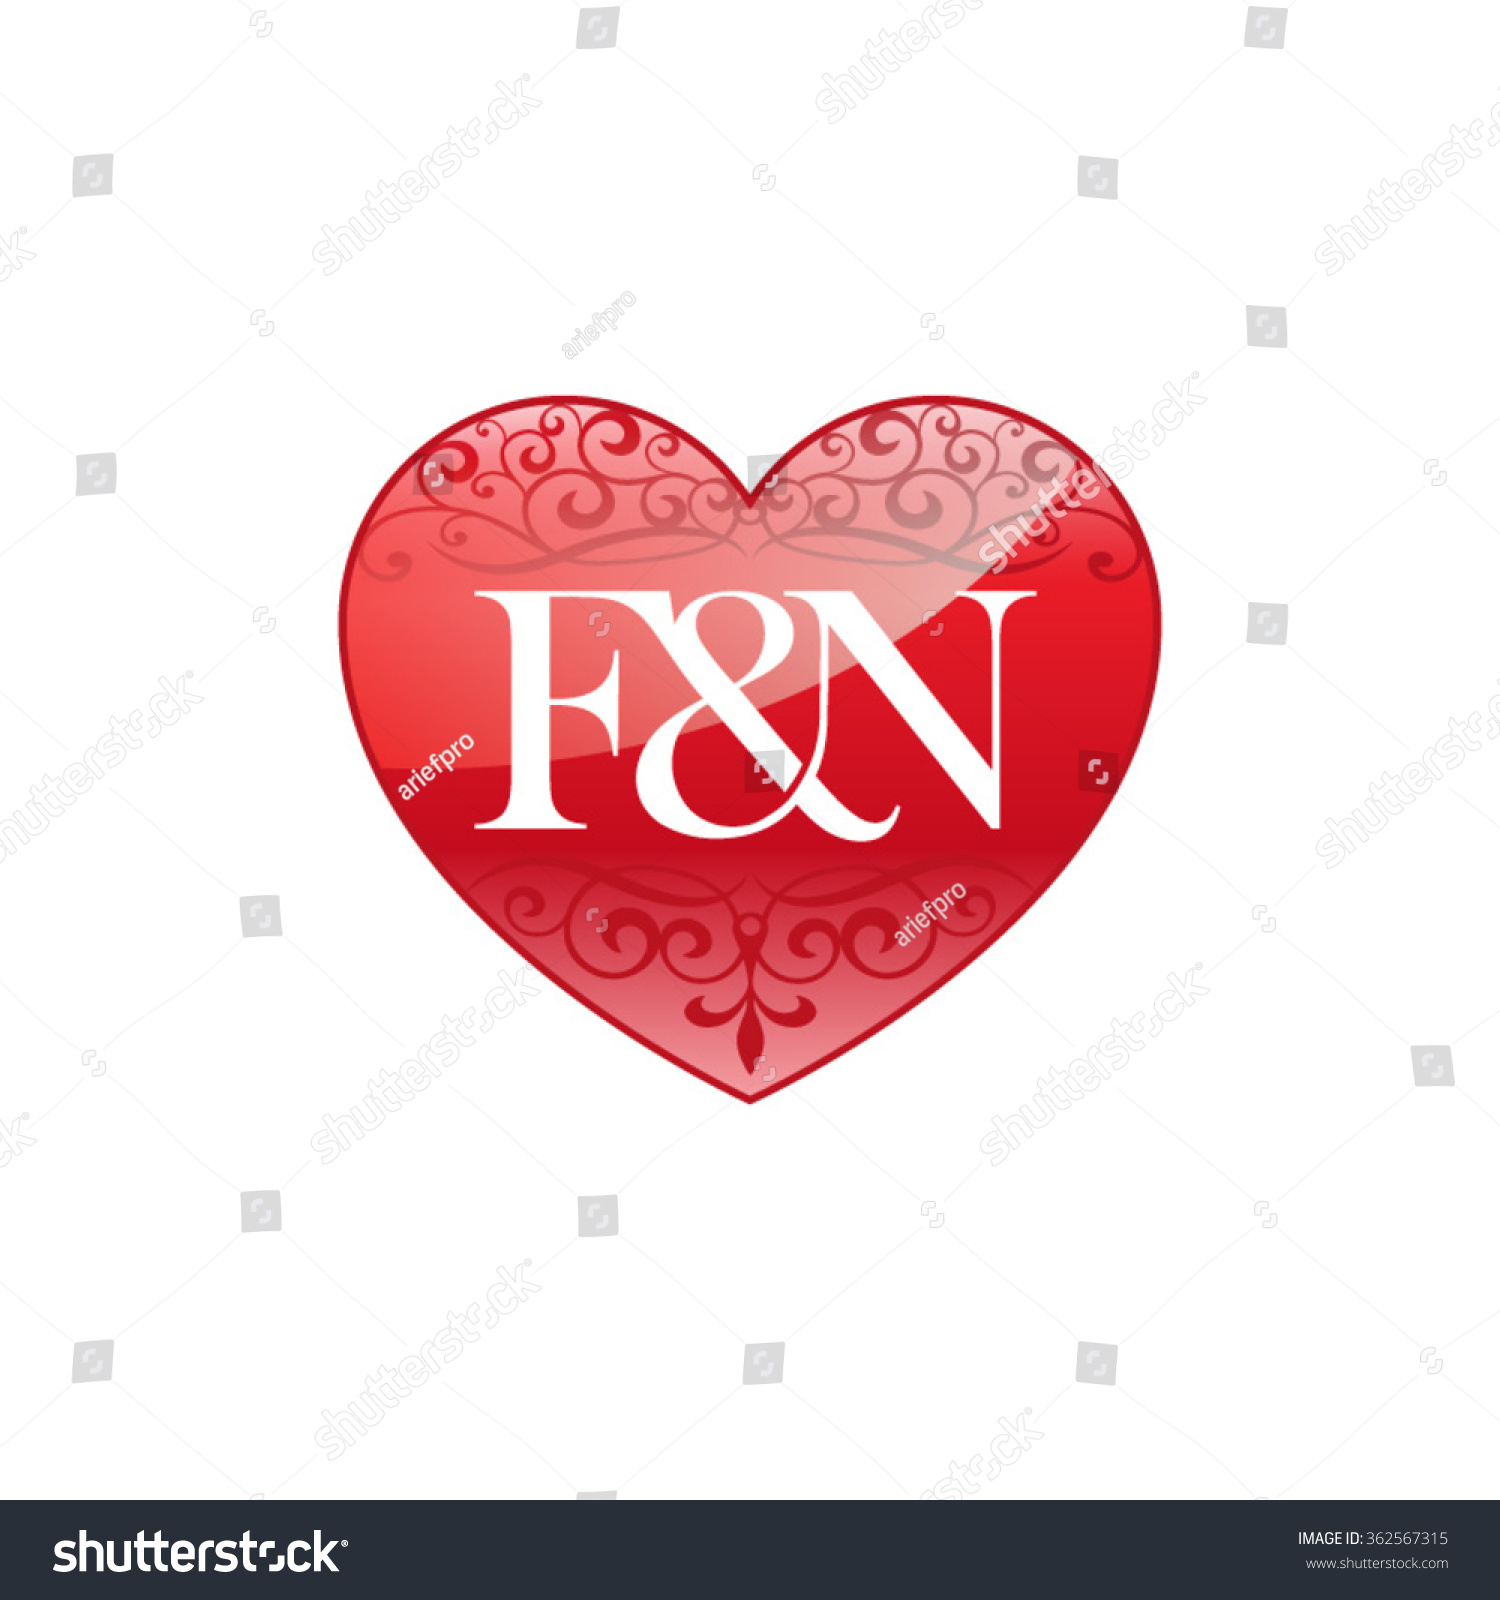 Fn initial letter couple logo ornament stock vector 362567315 fn initial letter couple logo with ornament heart shape thecheapjerseys Choice Image